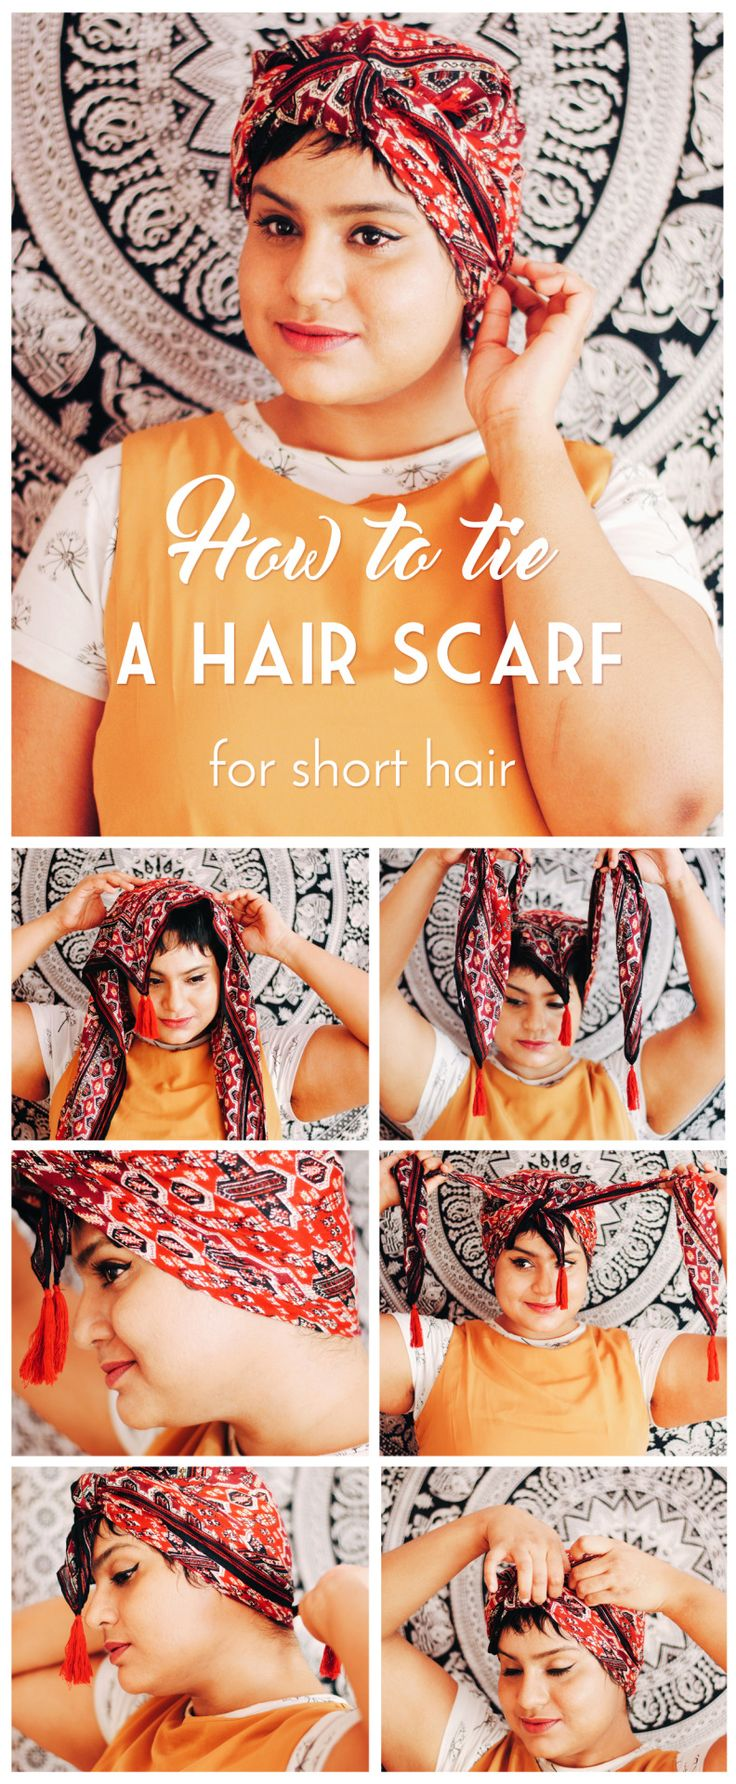 Short hair is amazing but it can sometimes be a pain to style. I've been borrowing my bff's styling wax recently to keep my pixie in shape, but there are some days when it just refuses to be tamed and...